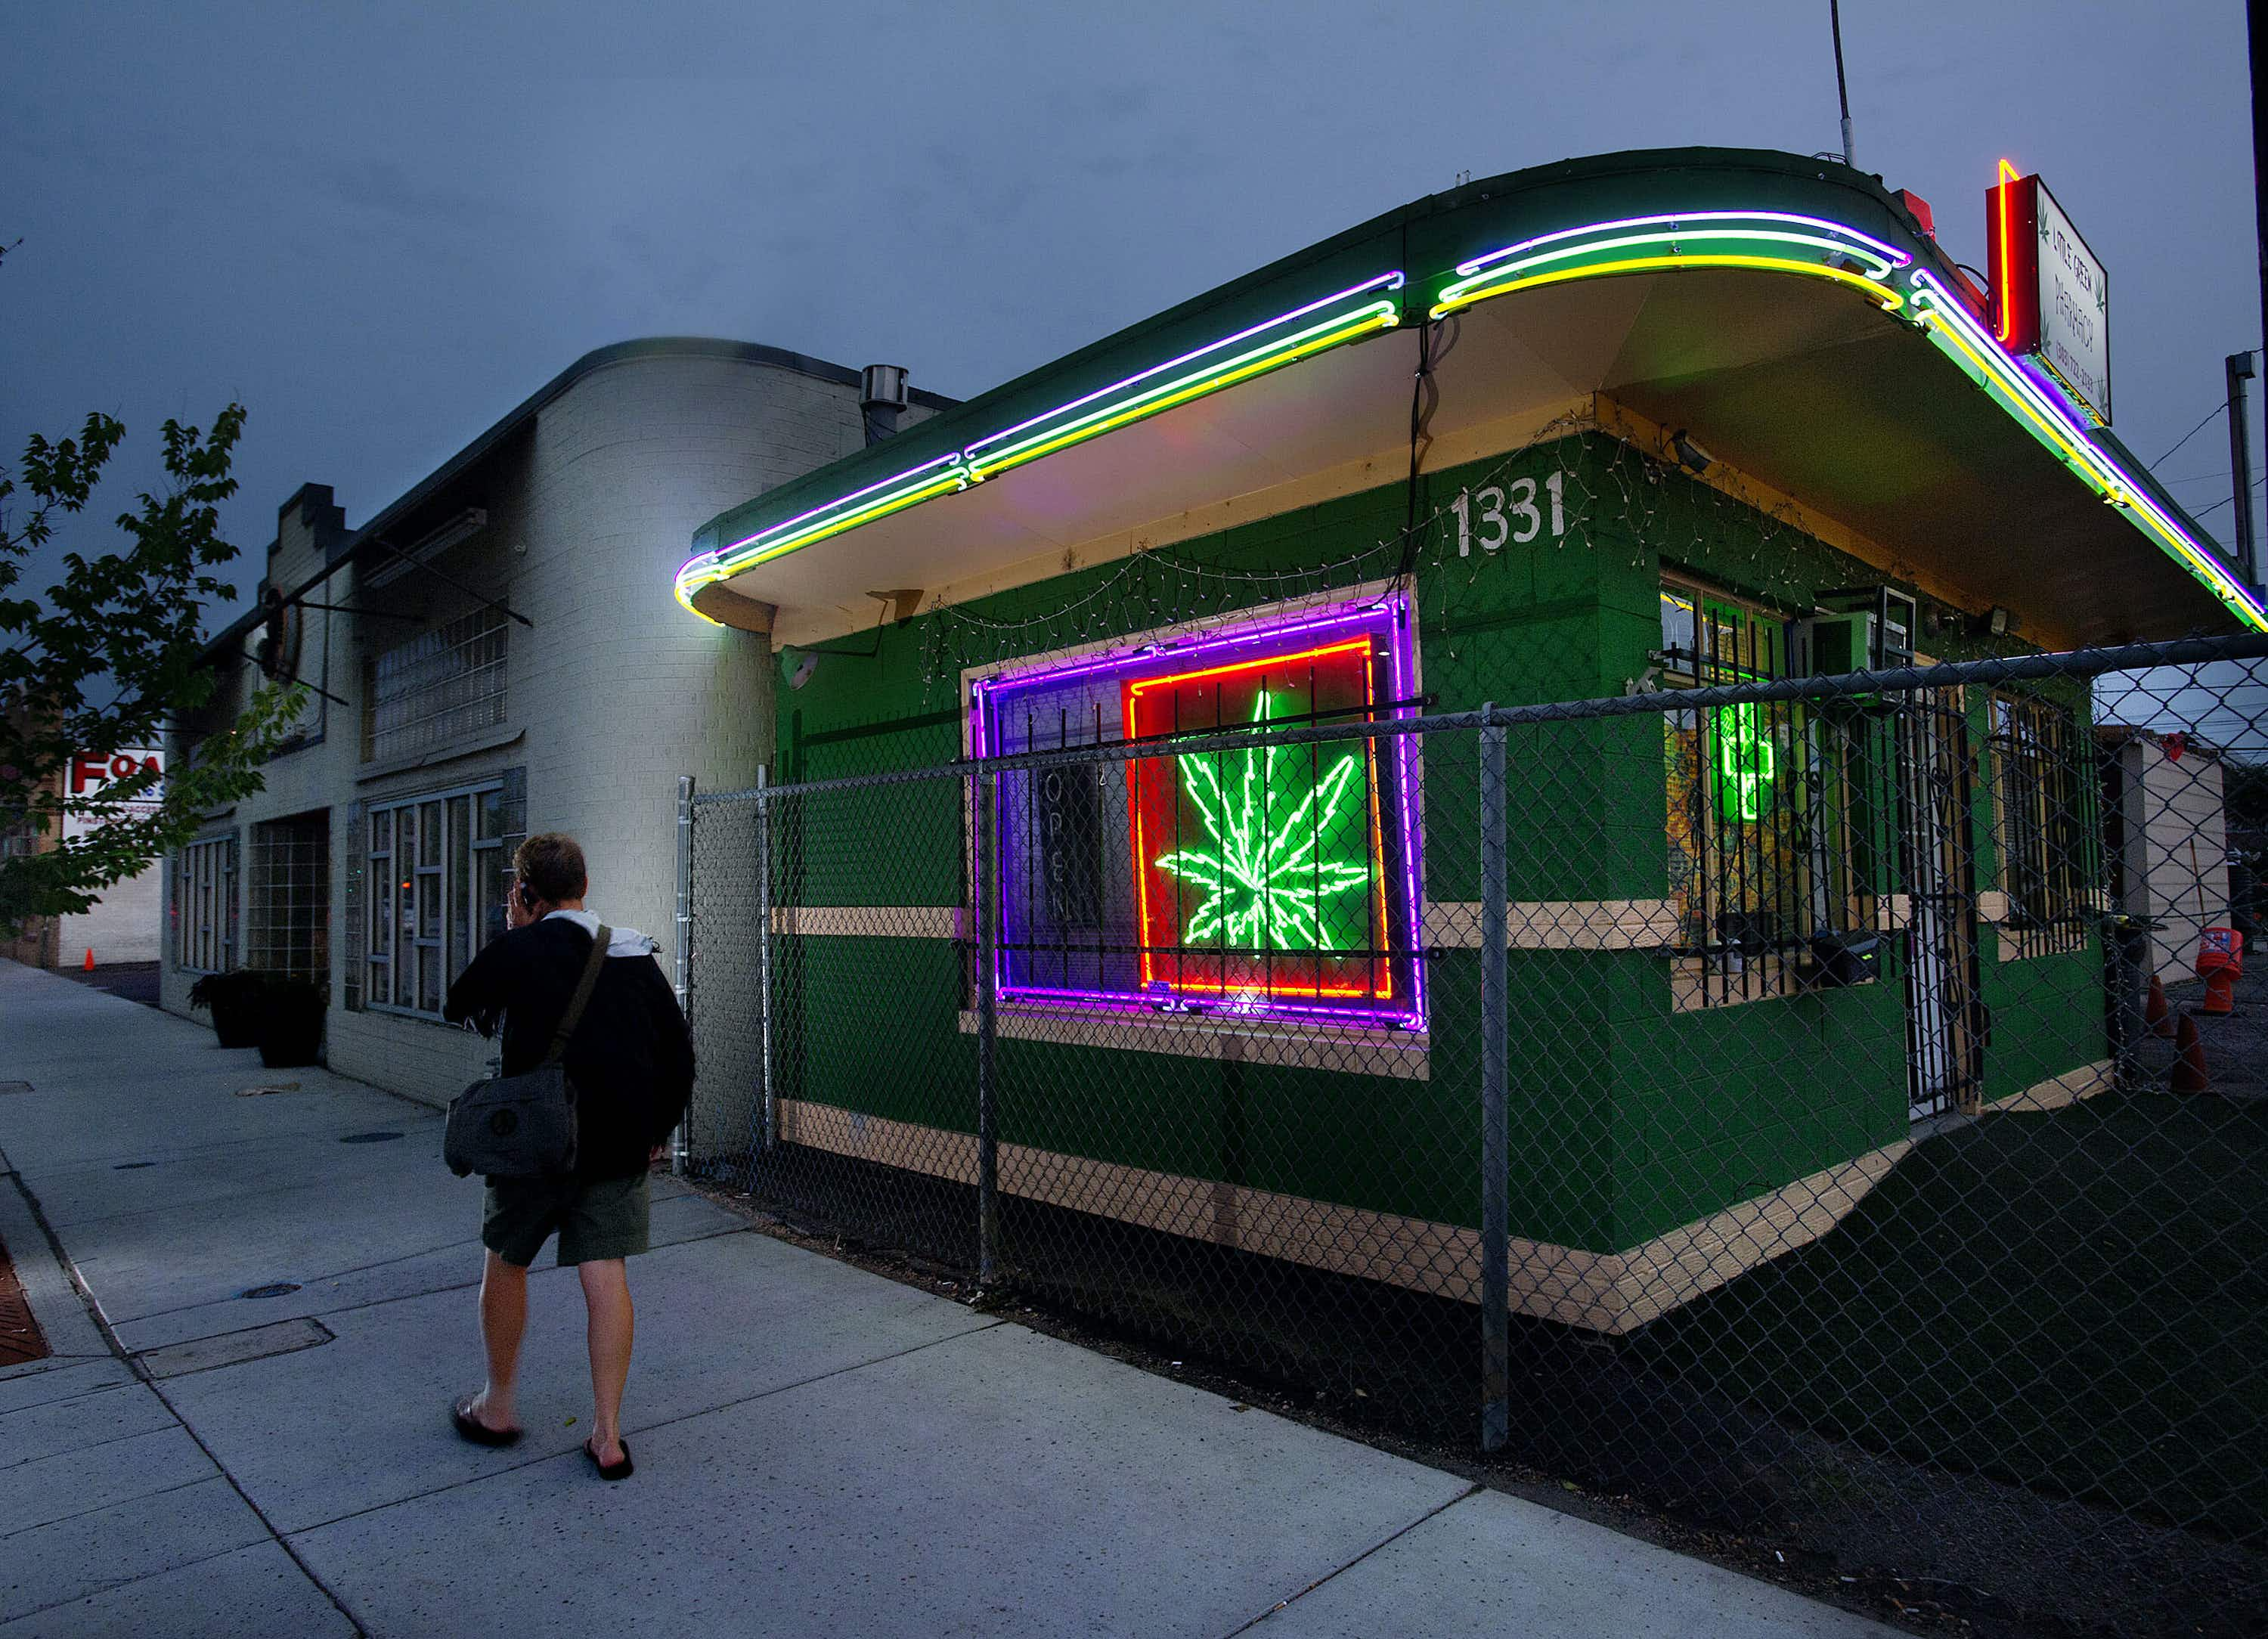 A pedestrians walks past the Little Green Pharmacy medical cannabis dispensary in Denver, Colorado, on Tuesday, August 2, 2011. (Randall Benton/Sacramento Bee/Tribune News Service via Getty Images)